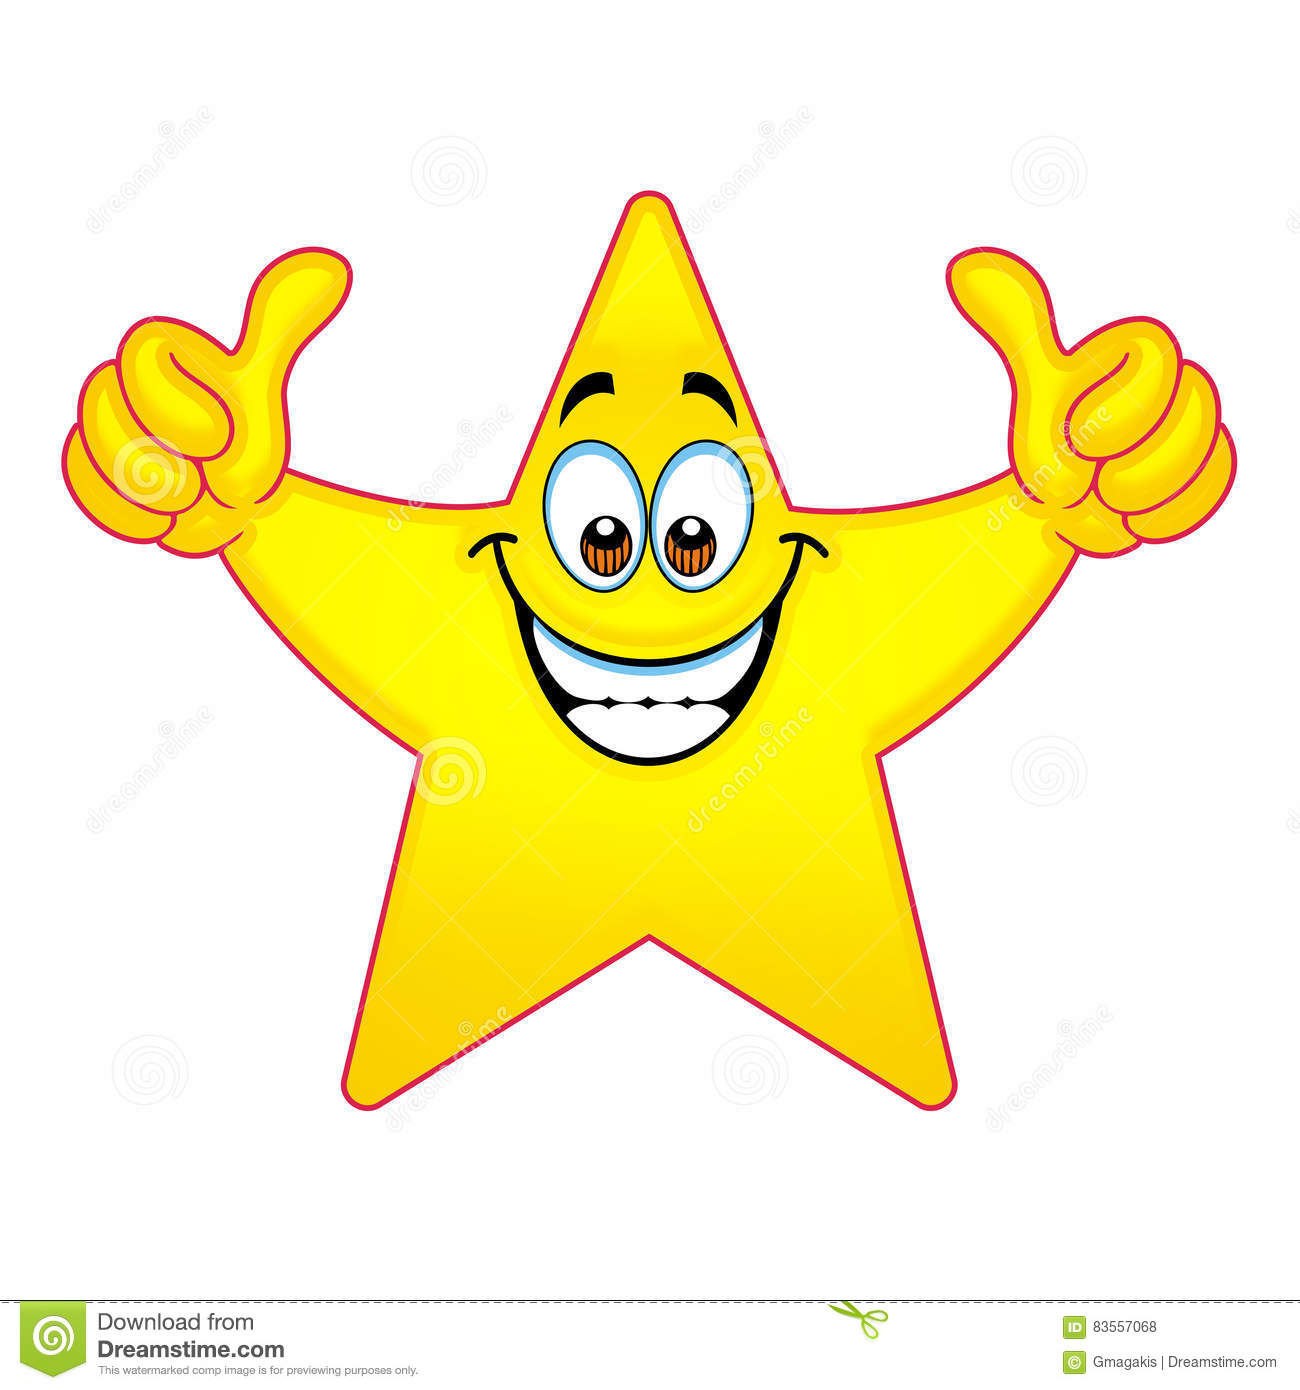 thumbs up star vector illustration cartoondealer com night sky clipart free download night time sky clipart